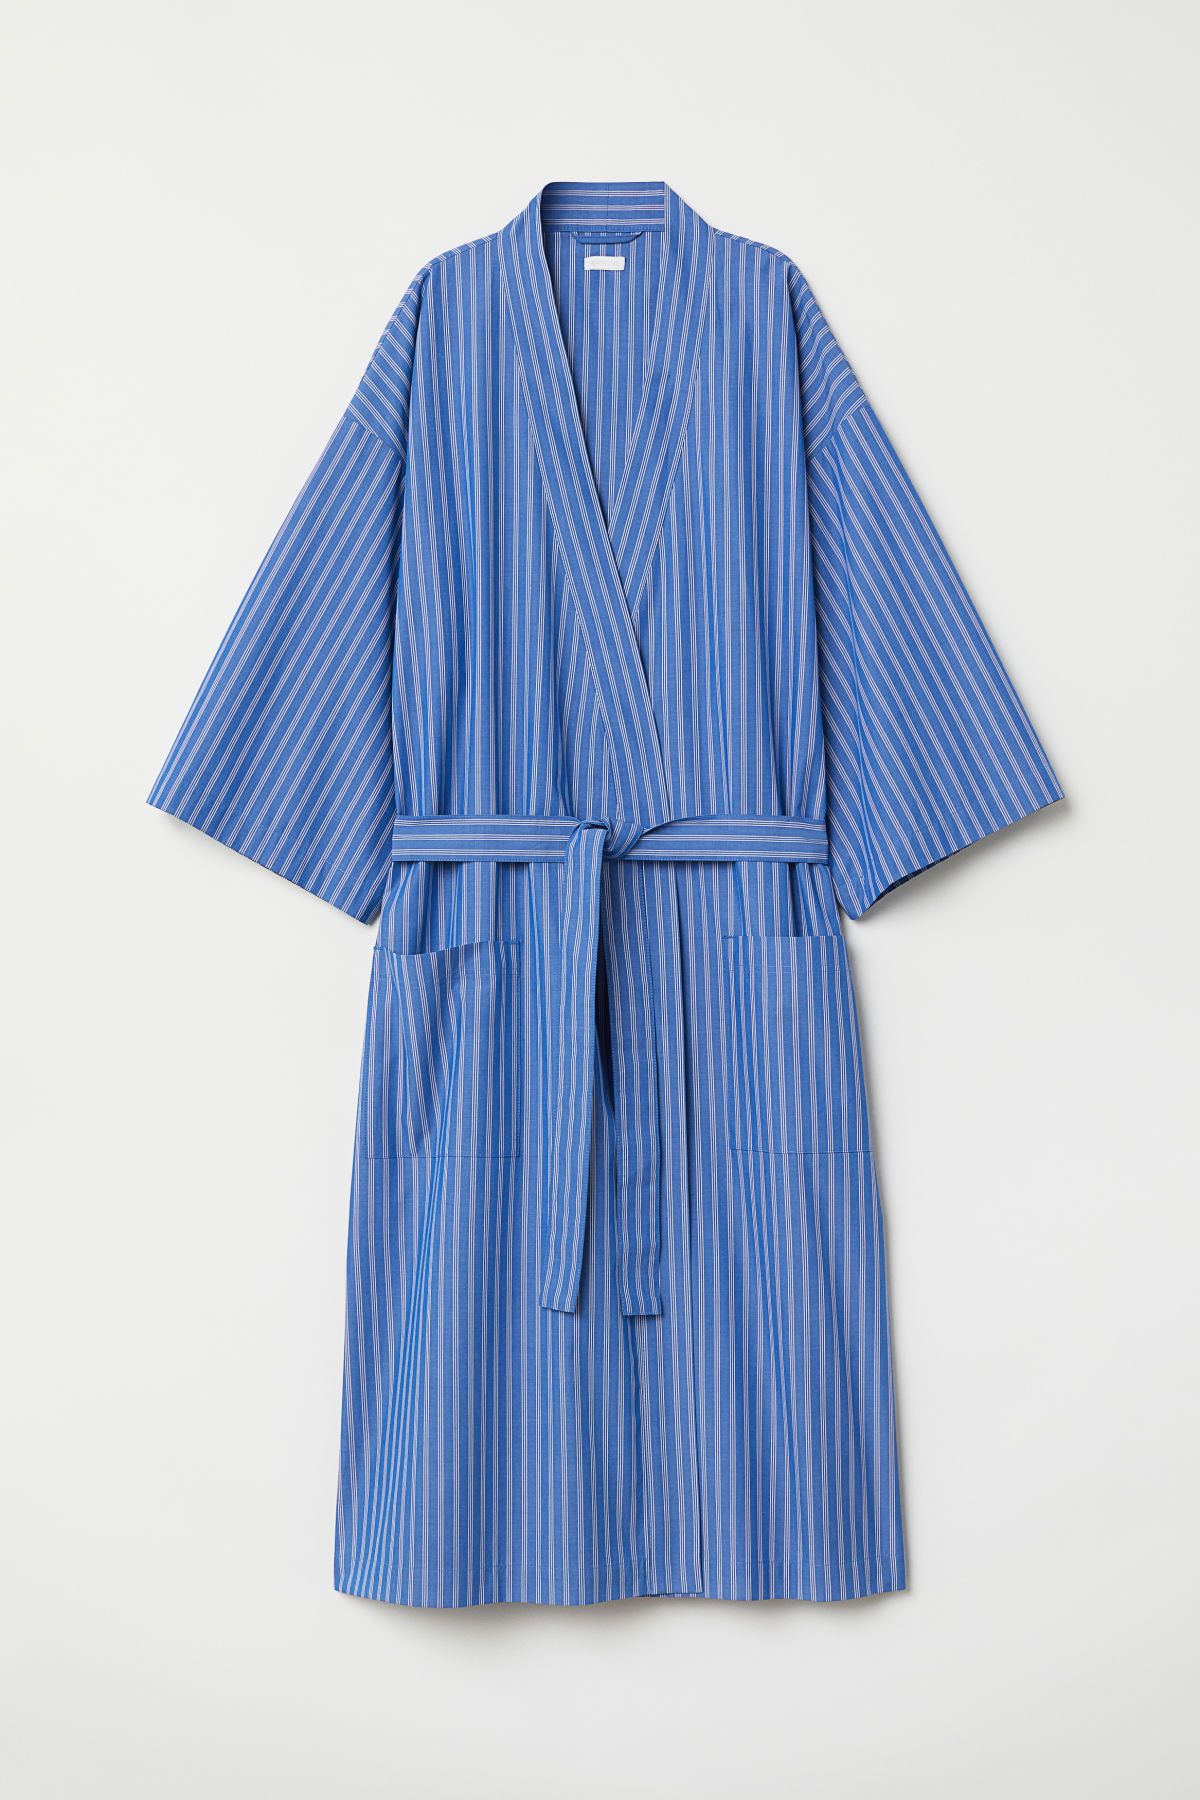 b3ef0c8ded32 Bright blue/striped. Striped bathrobe in crisp, woven fabric with  3/4-length sleeves. Tie belt at waist, patch front pockets, and slits at  sides.